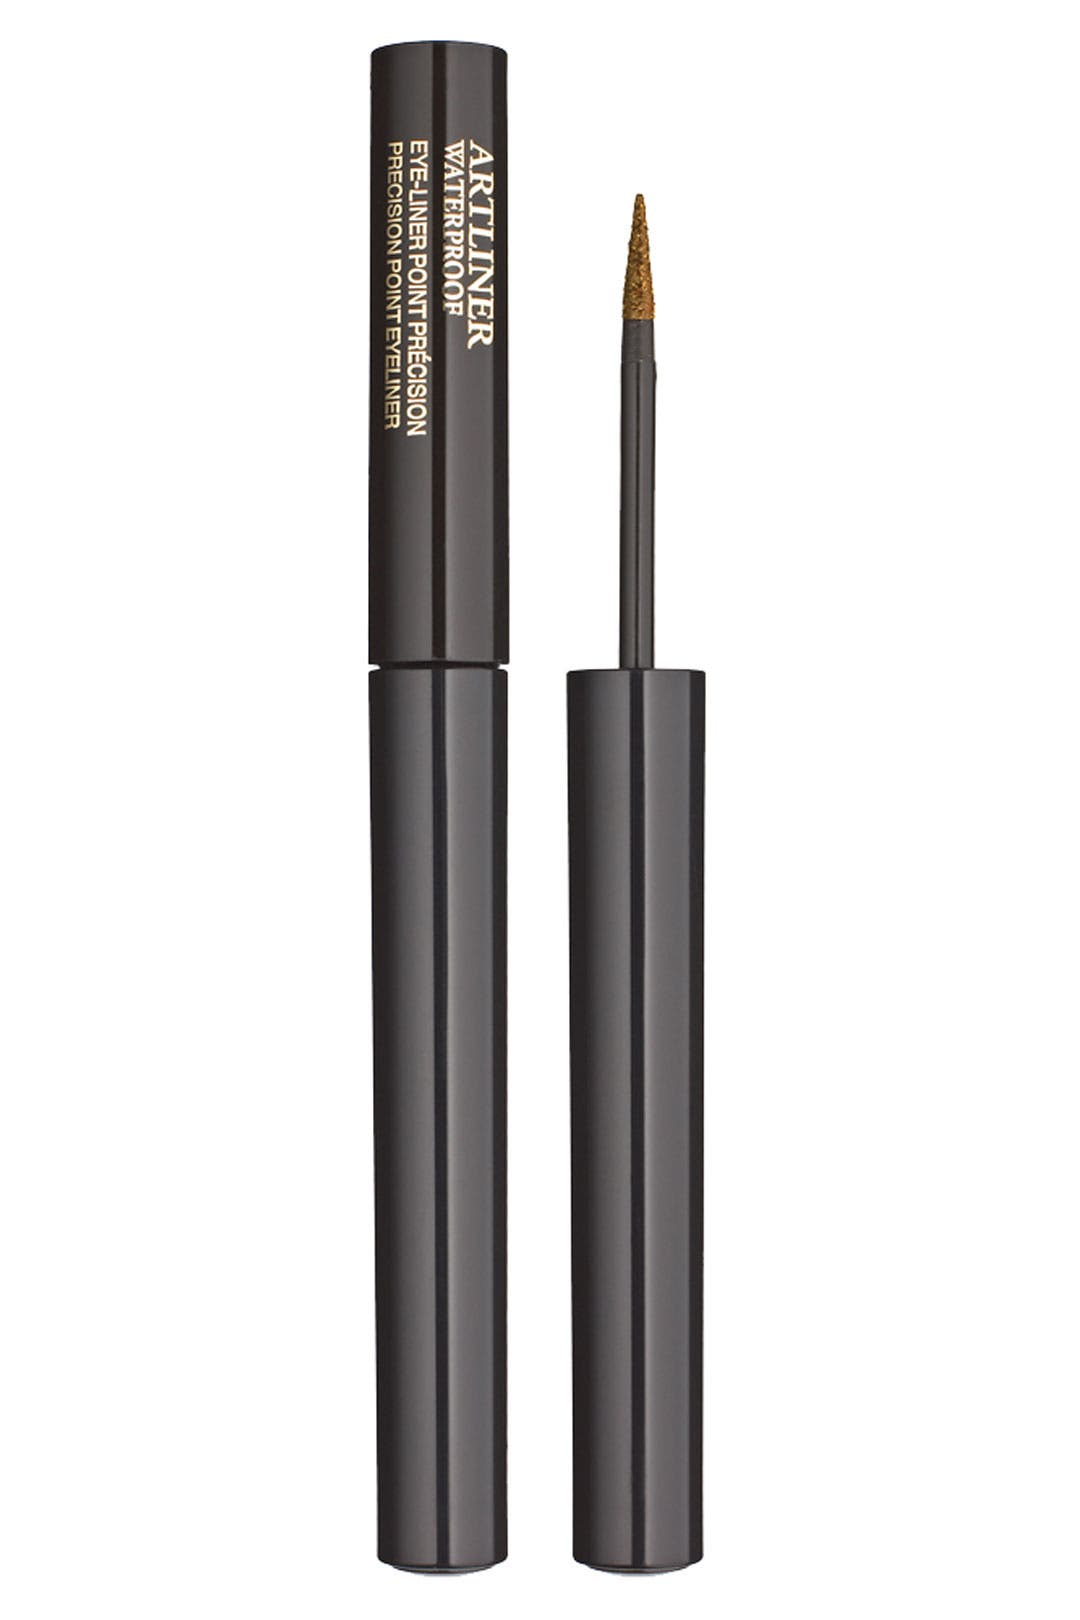 Artliner Gold Passion by LANCÔME